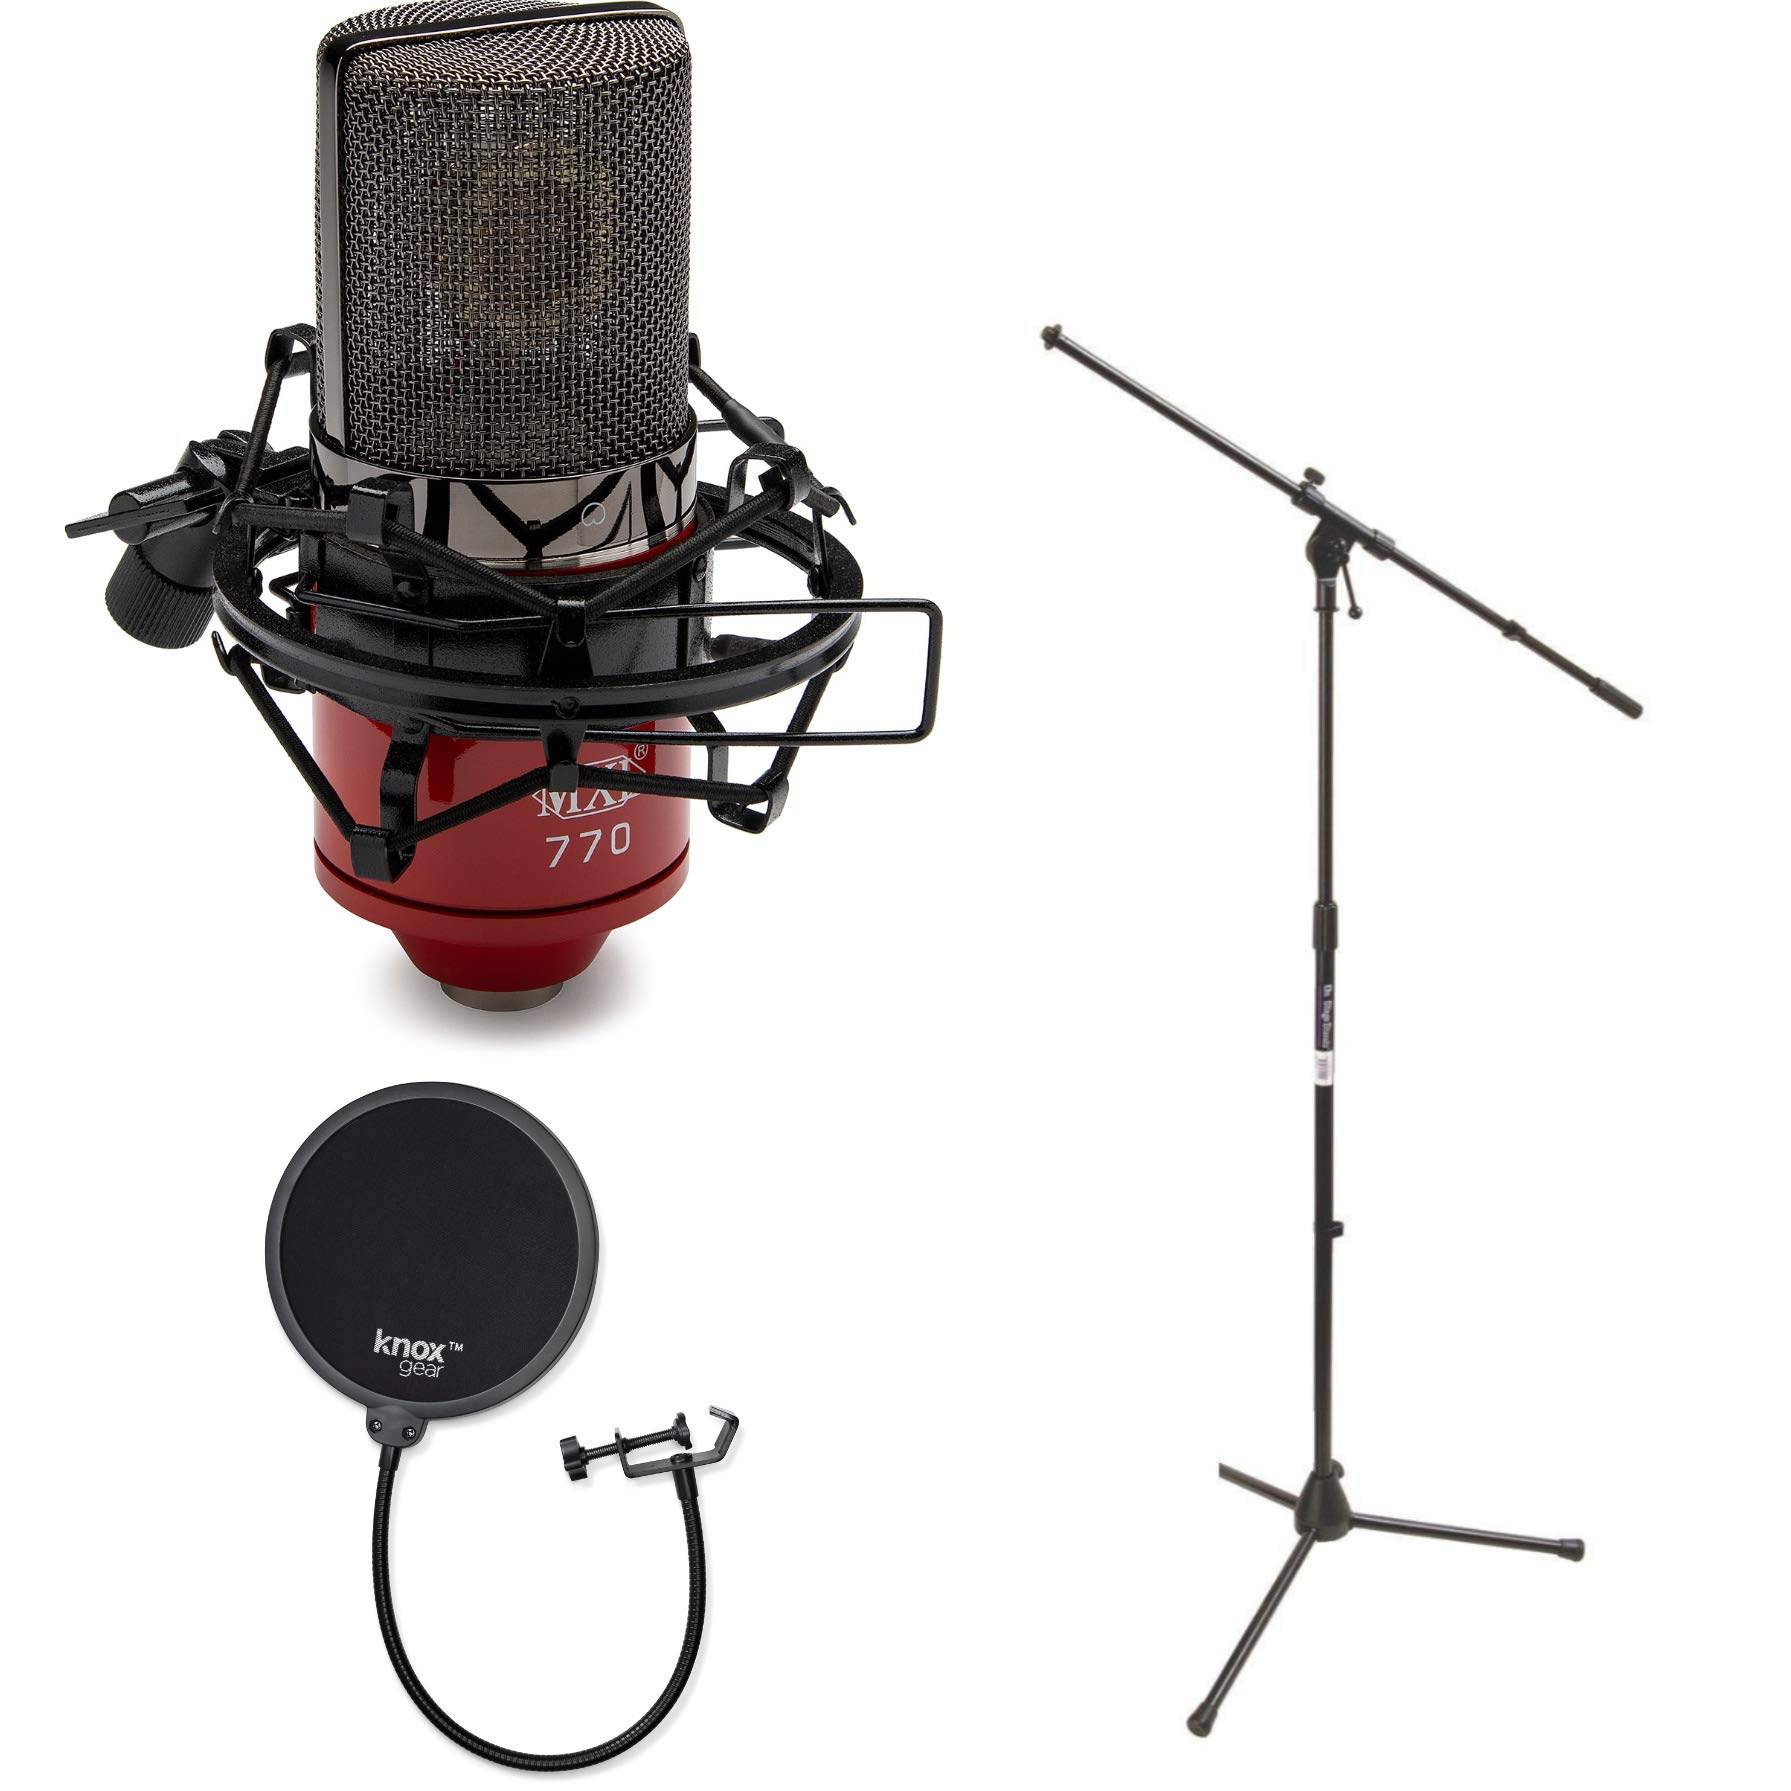 MXL 770-RED Cardioid Condenser Microphone with Euro Boom Microphone Stand and Knox Gear Pop Filter